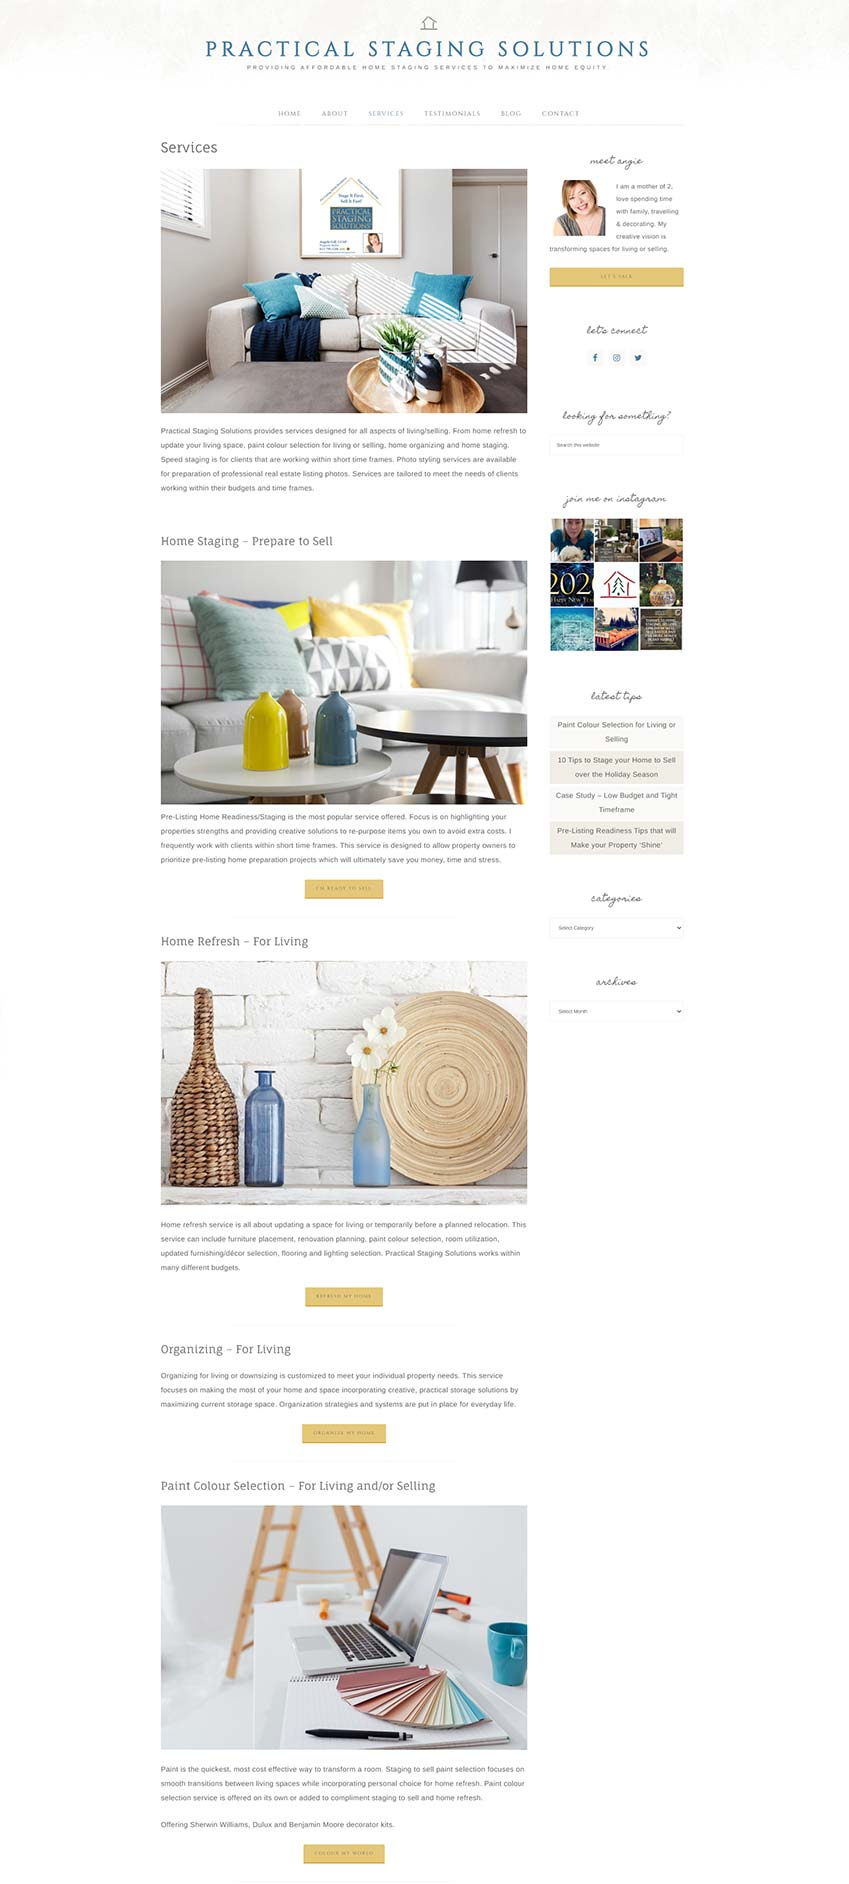 Practical Staging Solutions Website Redesign - services page showing captivating photos to engage visitors.